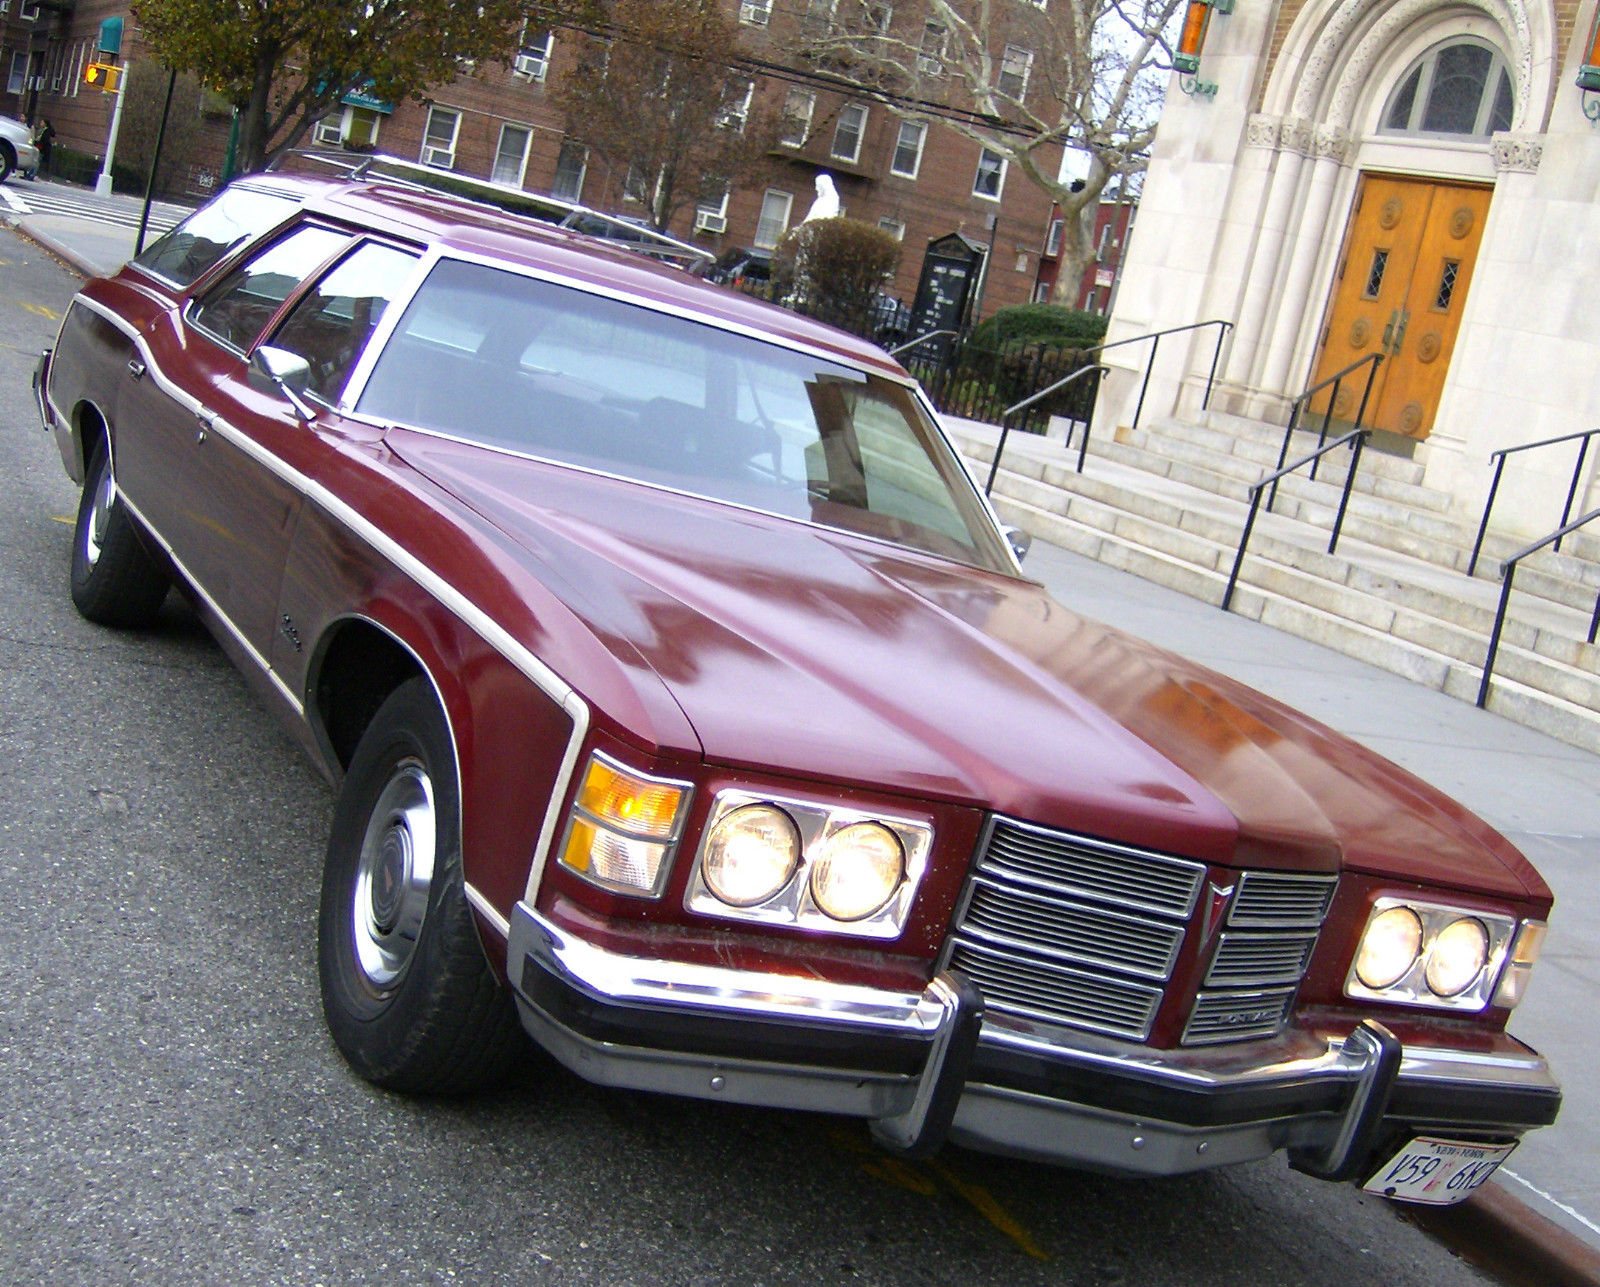 File:1975 Pontiac Grand Safari station wagon AACA Iowa-r ... |1975 Catalina Station Wagon Buick